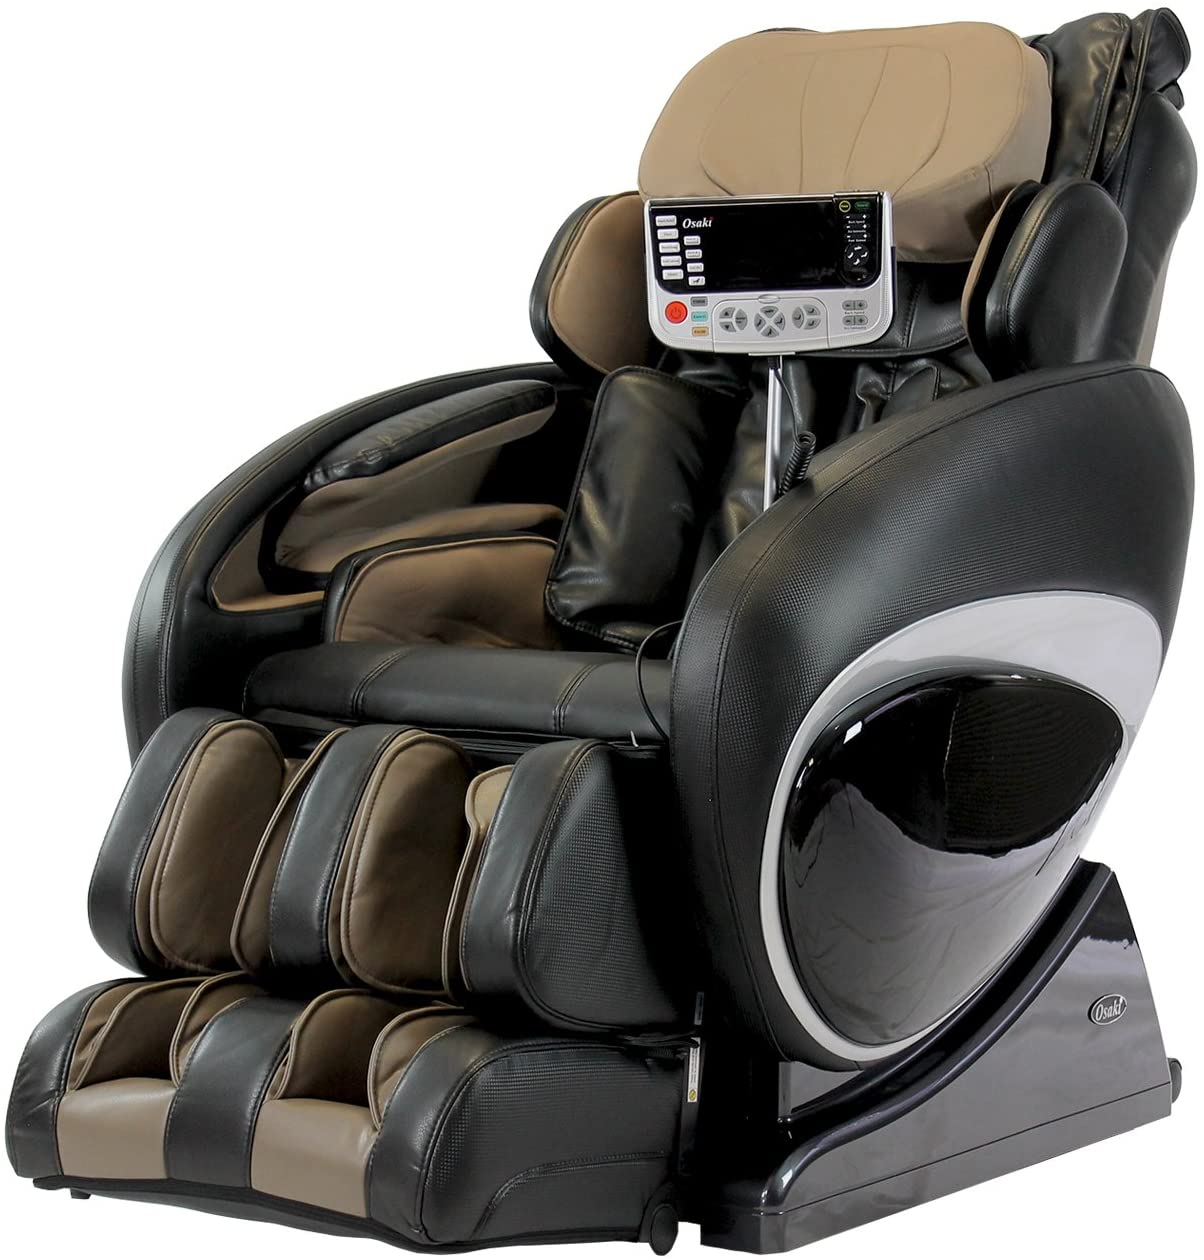 Osaki OS4000TA Model OS-4000T Zero Gravity Massage Chair, Black, Computer Body Scan, Zero Gravity Design, Unique Foot Roller, Next Generation Air Massage Technology, Arm Air Massagers